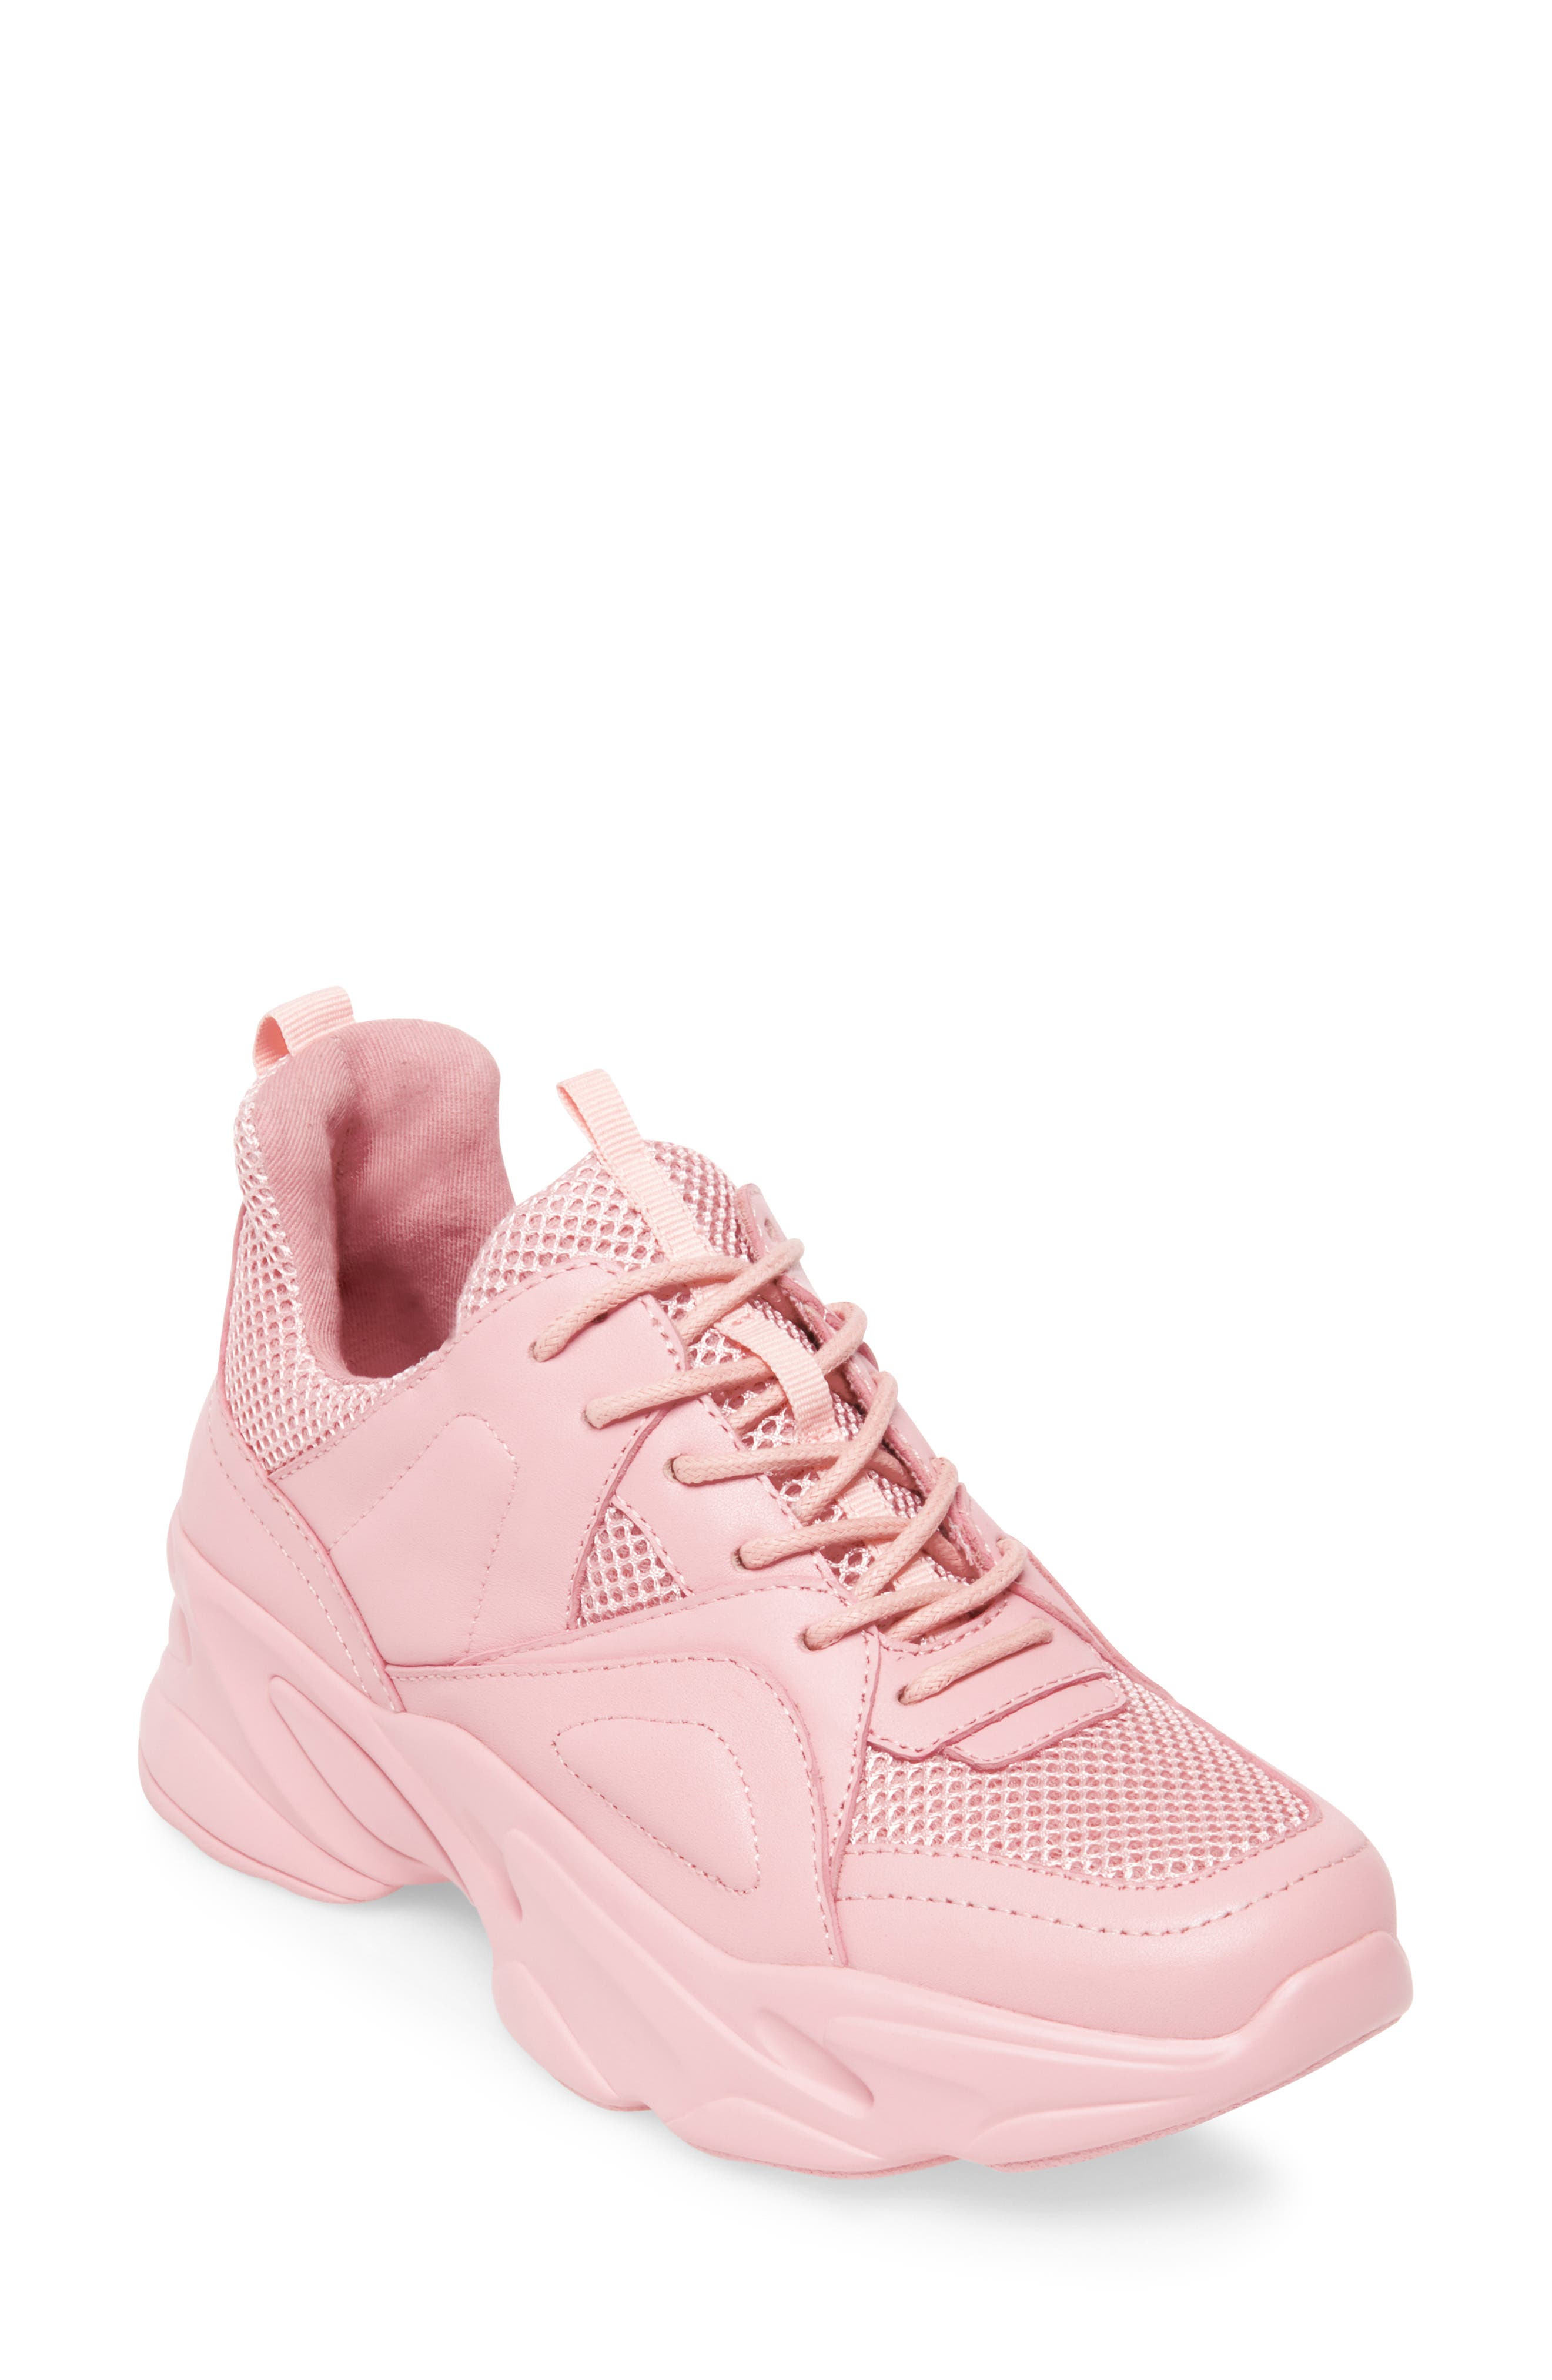 Movement Sneaker,                             Main thumbnail 1, color,                             PINK LEATHER